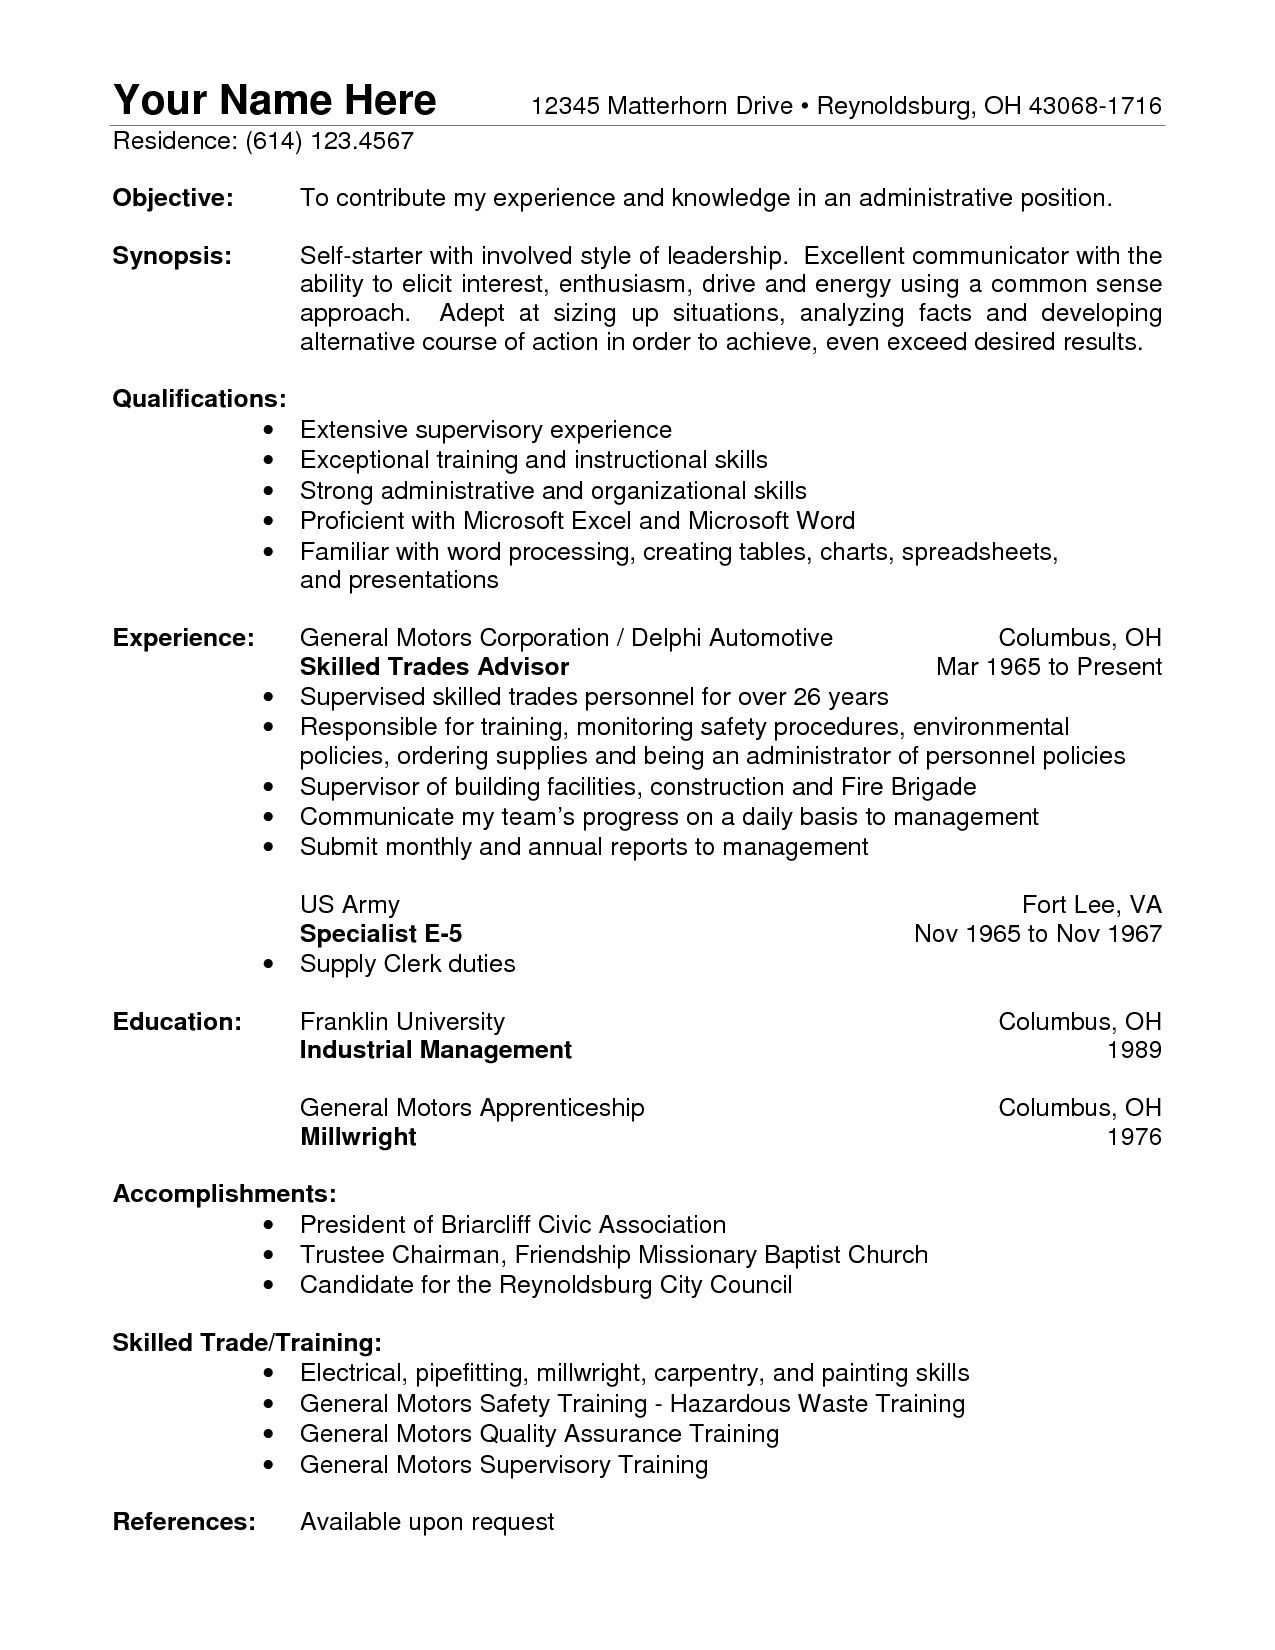 Job Skills Resume Warehouse Resume Template  Warehouse Resume Template We Provide